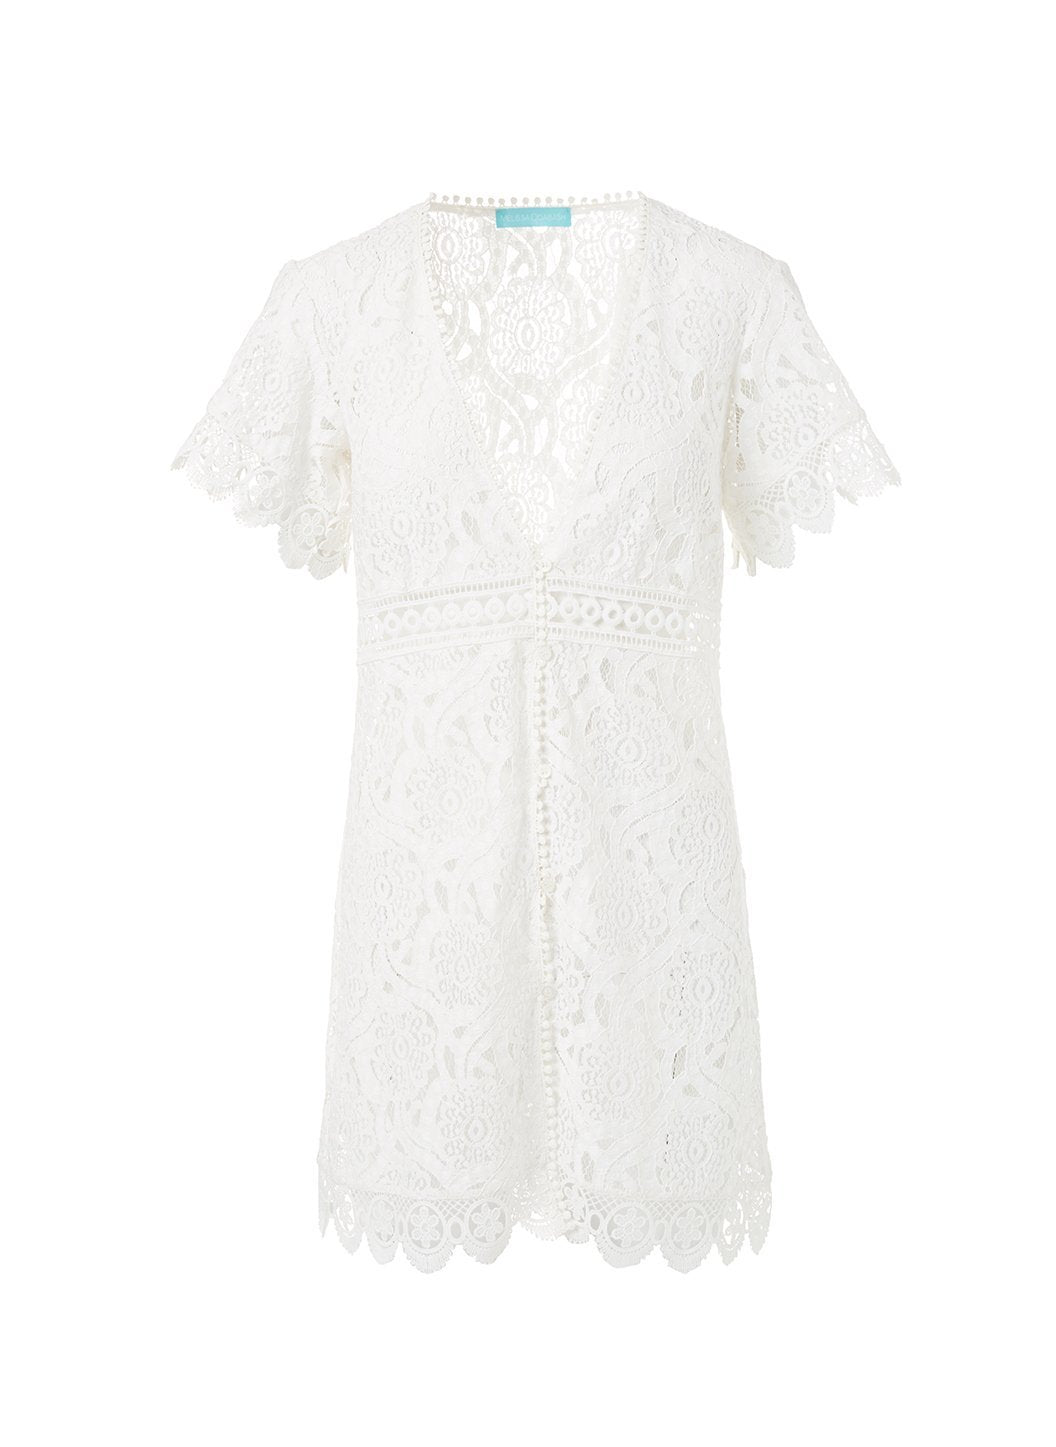 barrie white embroidered lace short button down coverup 2019